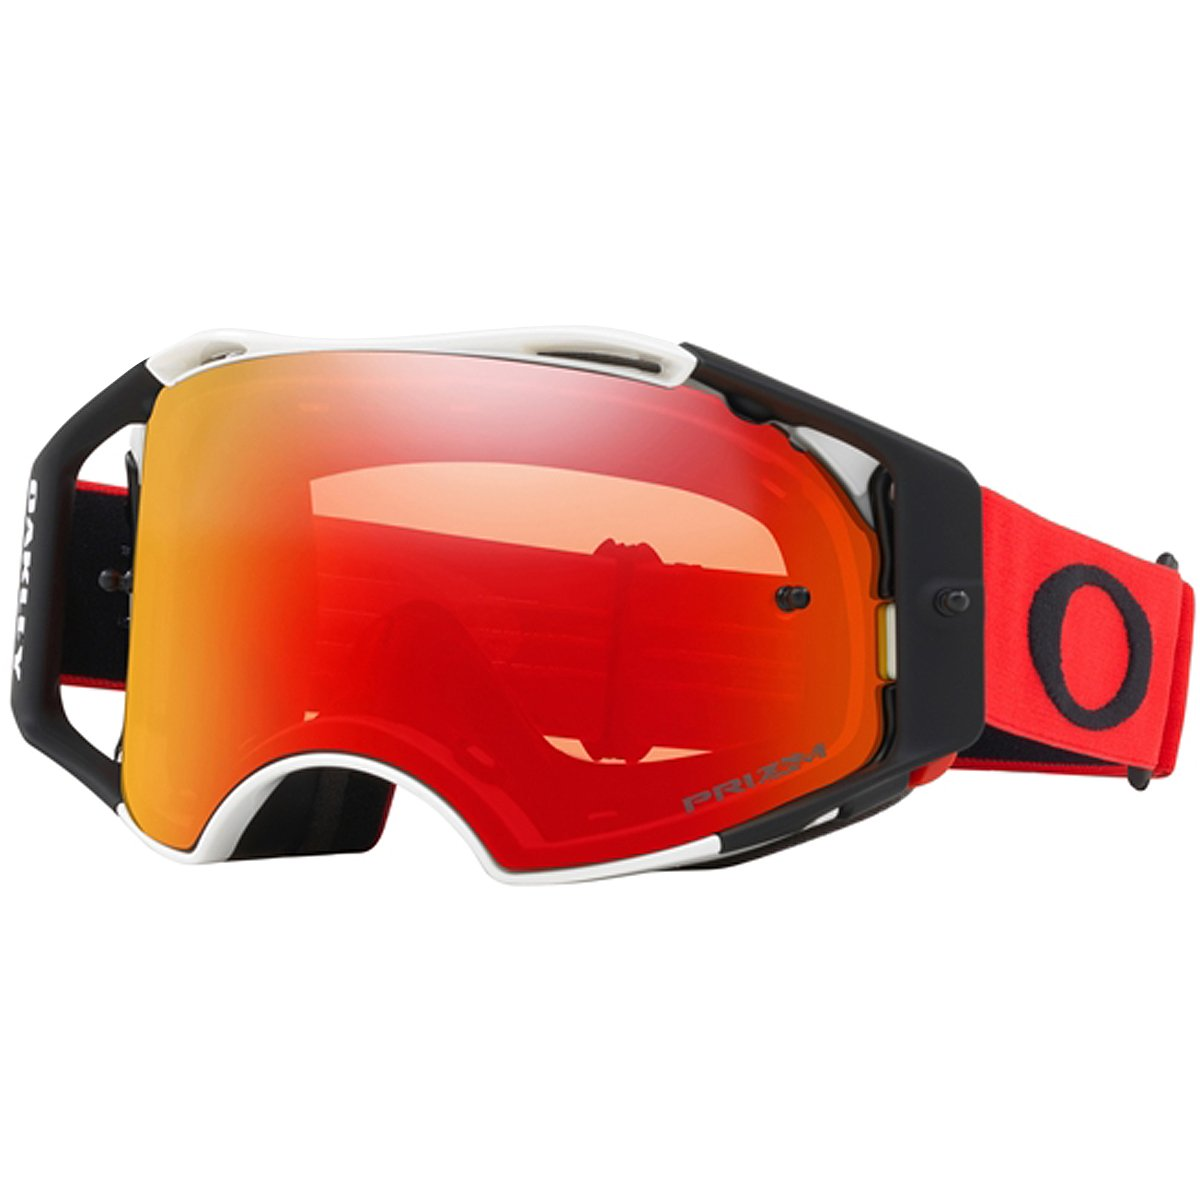 Oakley ABMX Red White with Prizm MX Torch unisex-adult Goggles (Red, Medium), 1 Pack